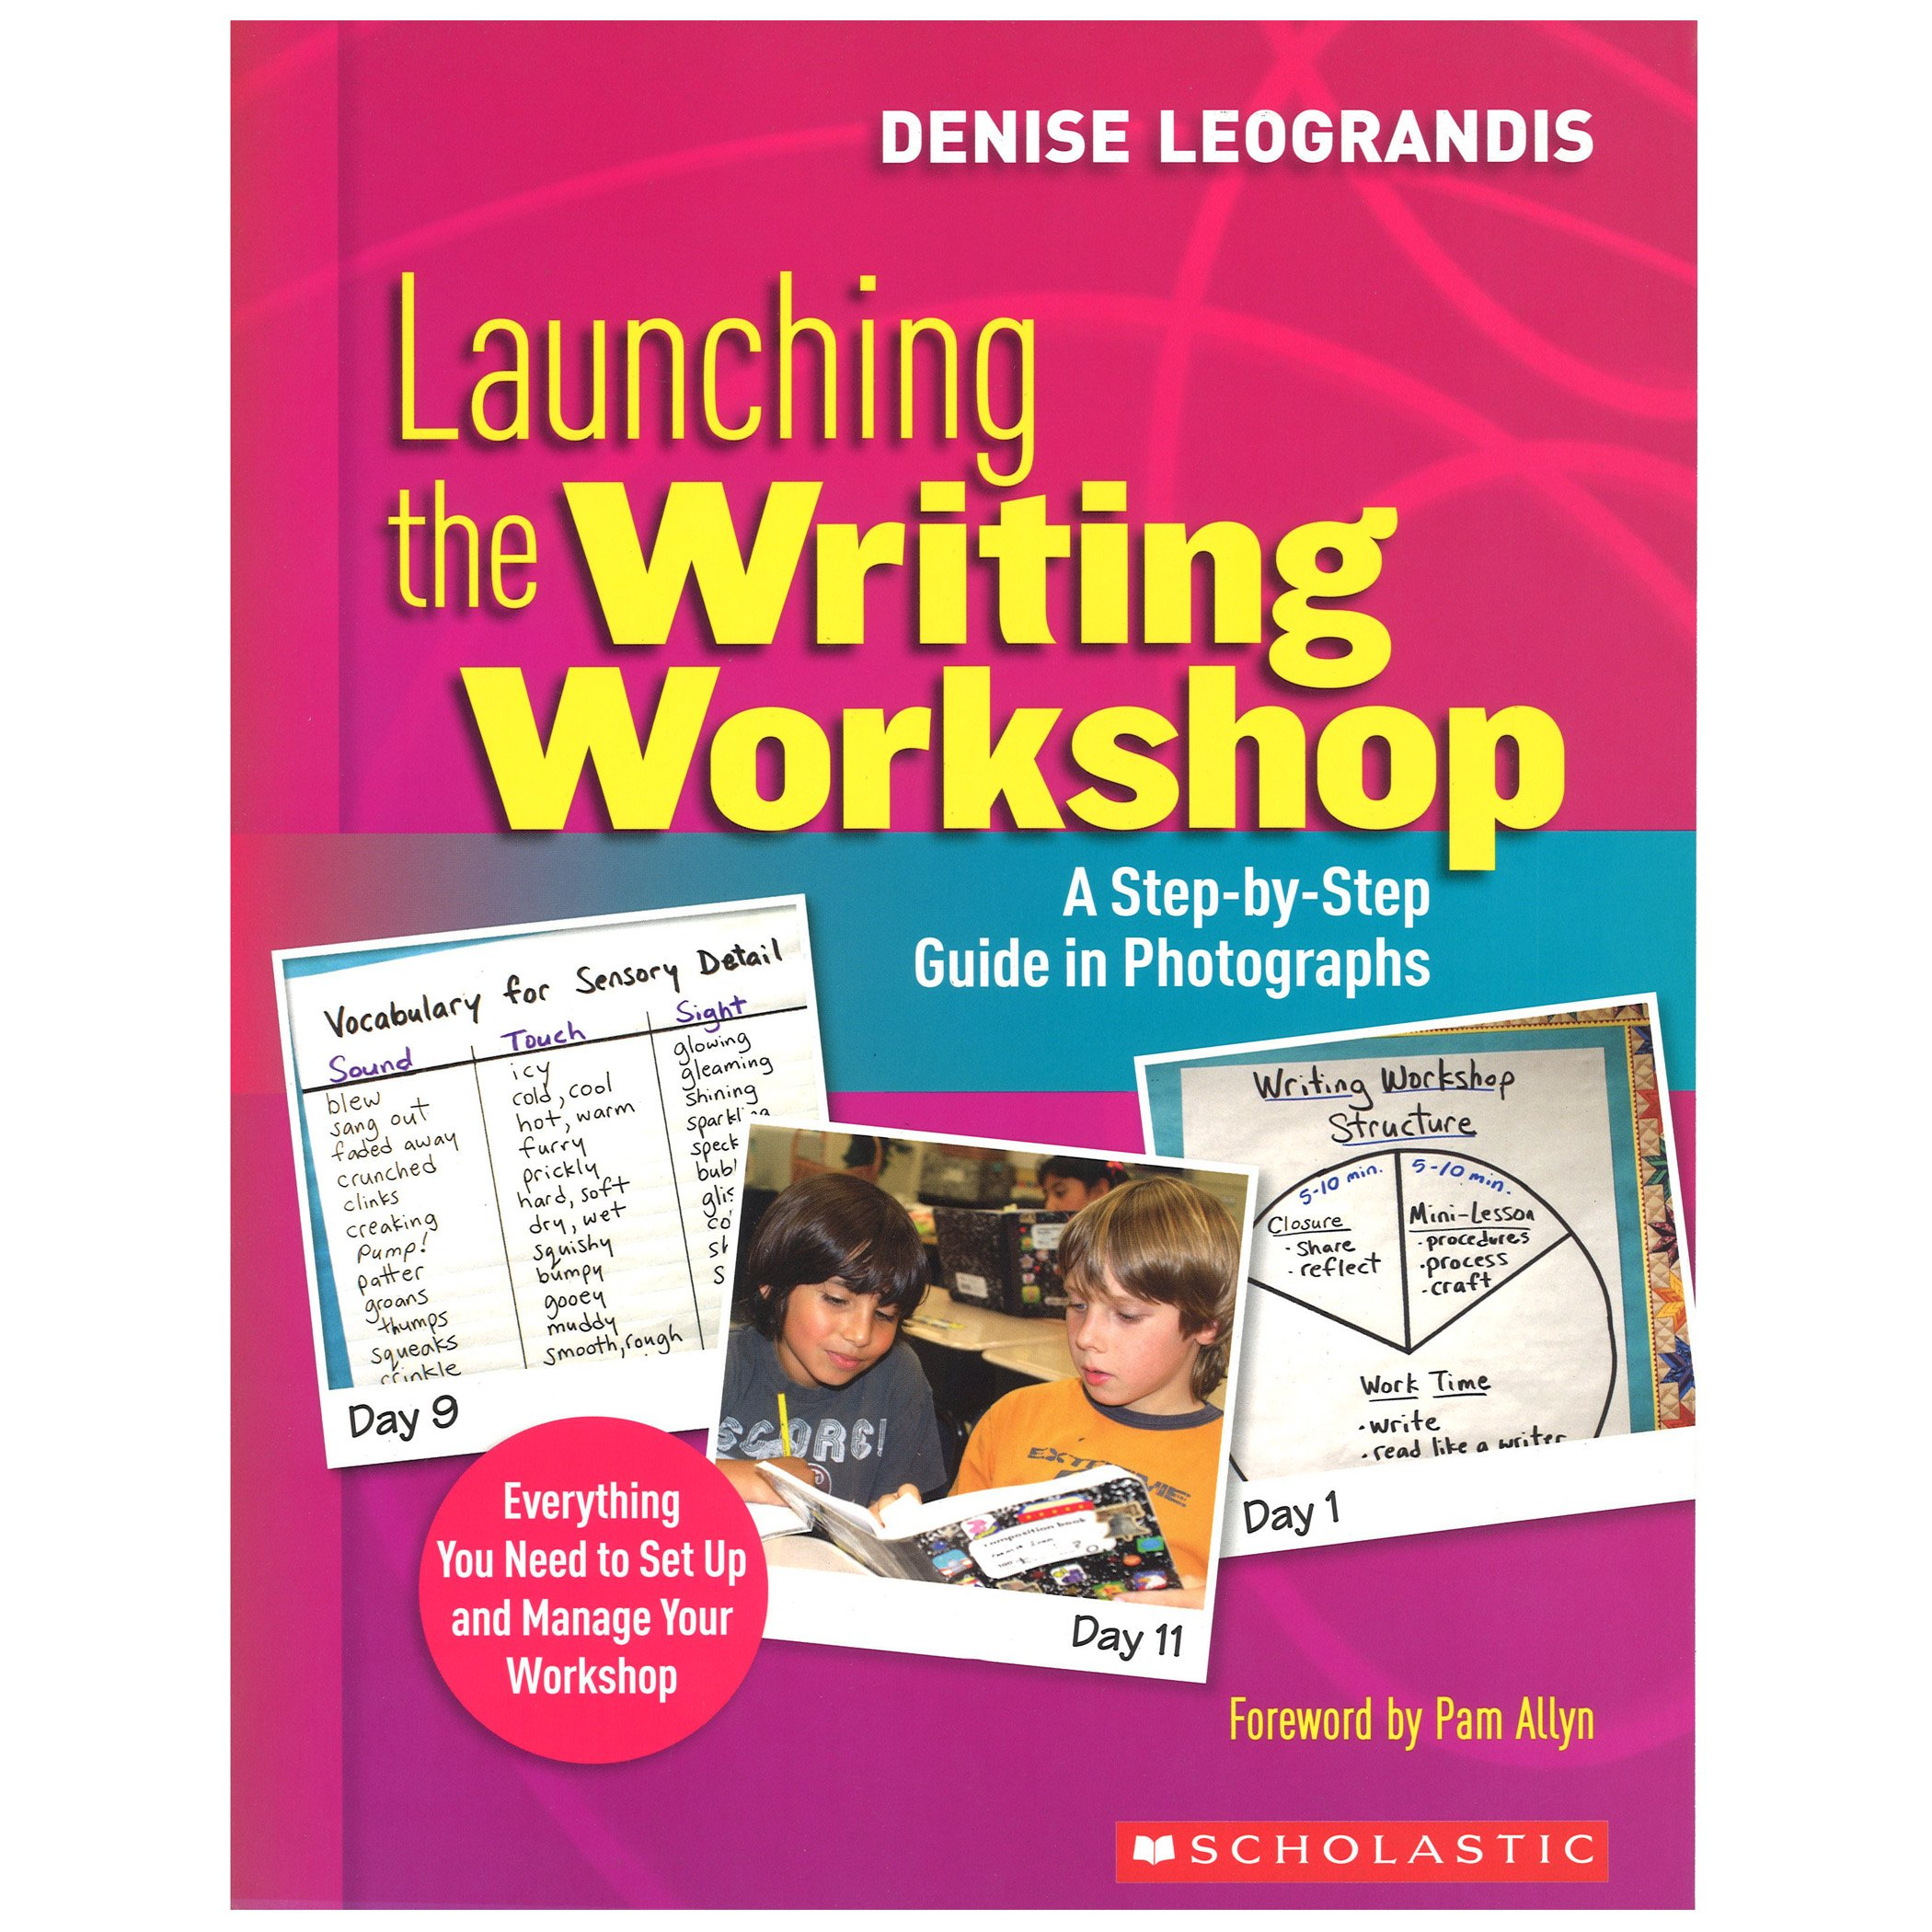 Amazon.com: Launching the Writing Workshop: A Step-by-Step Guide in  Photographs (9780545021210): Denise Leograndis: Books